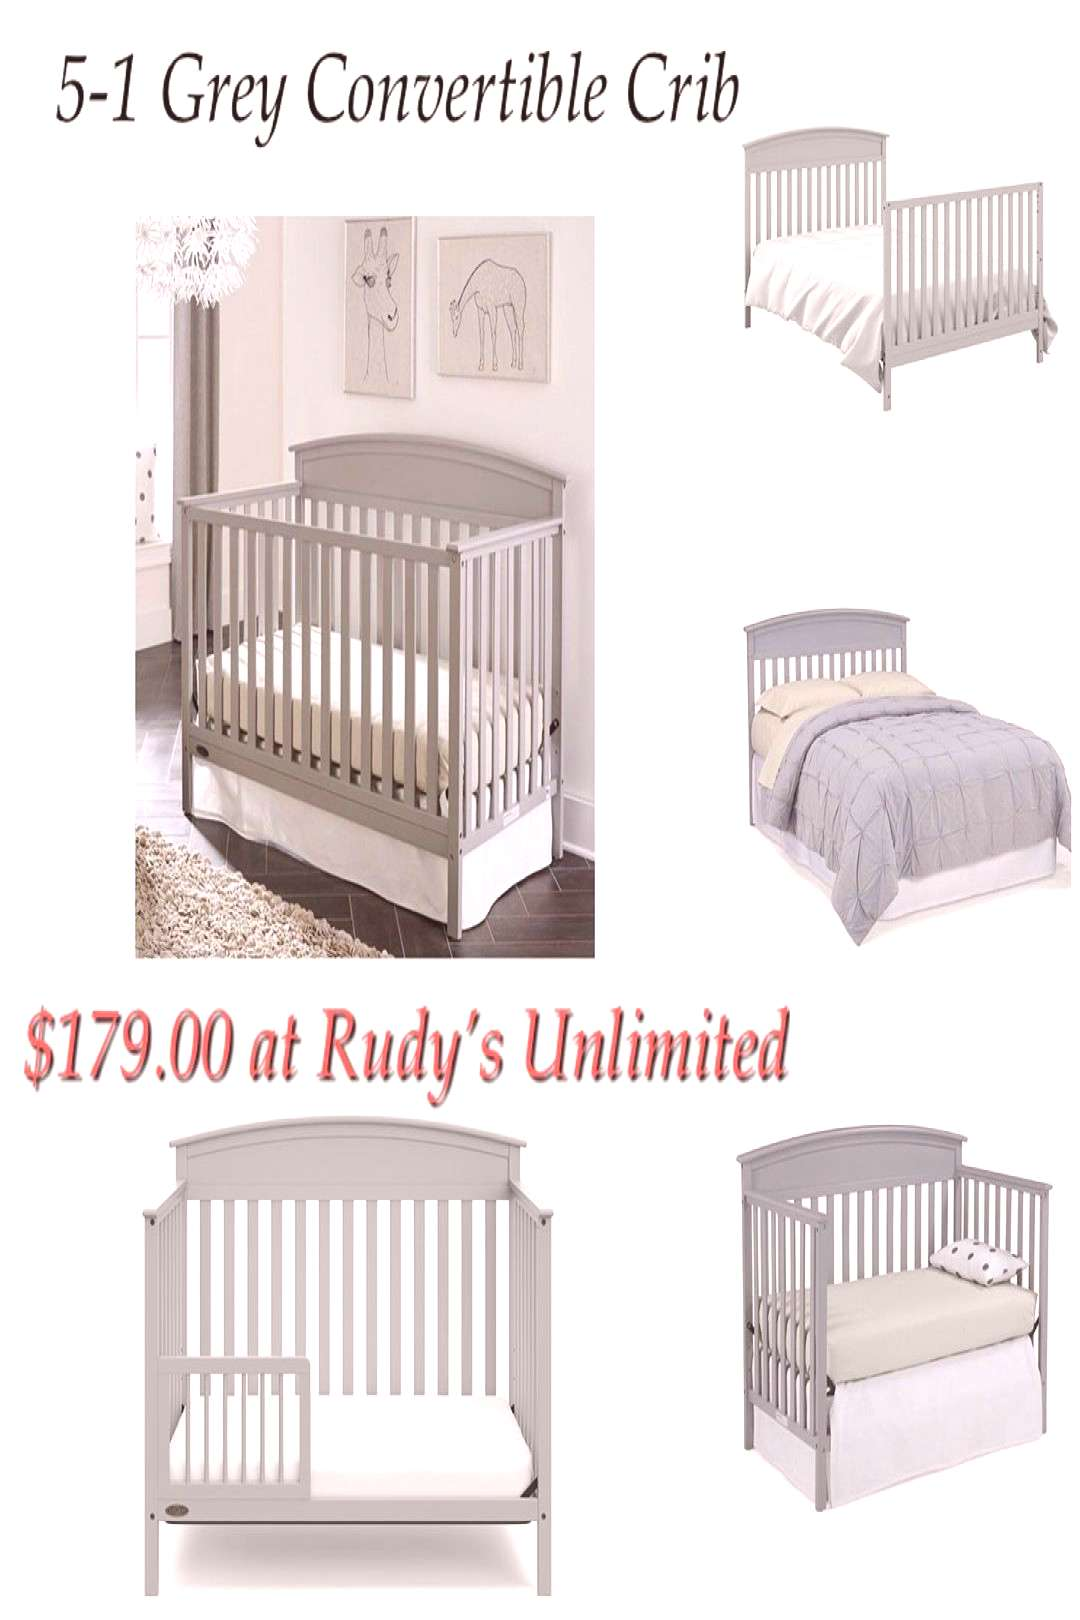 More Beautiful Baby Cribs #baby #cribs #mtsterlingky